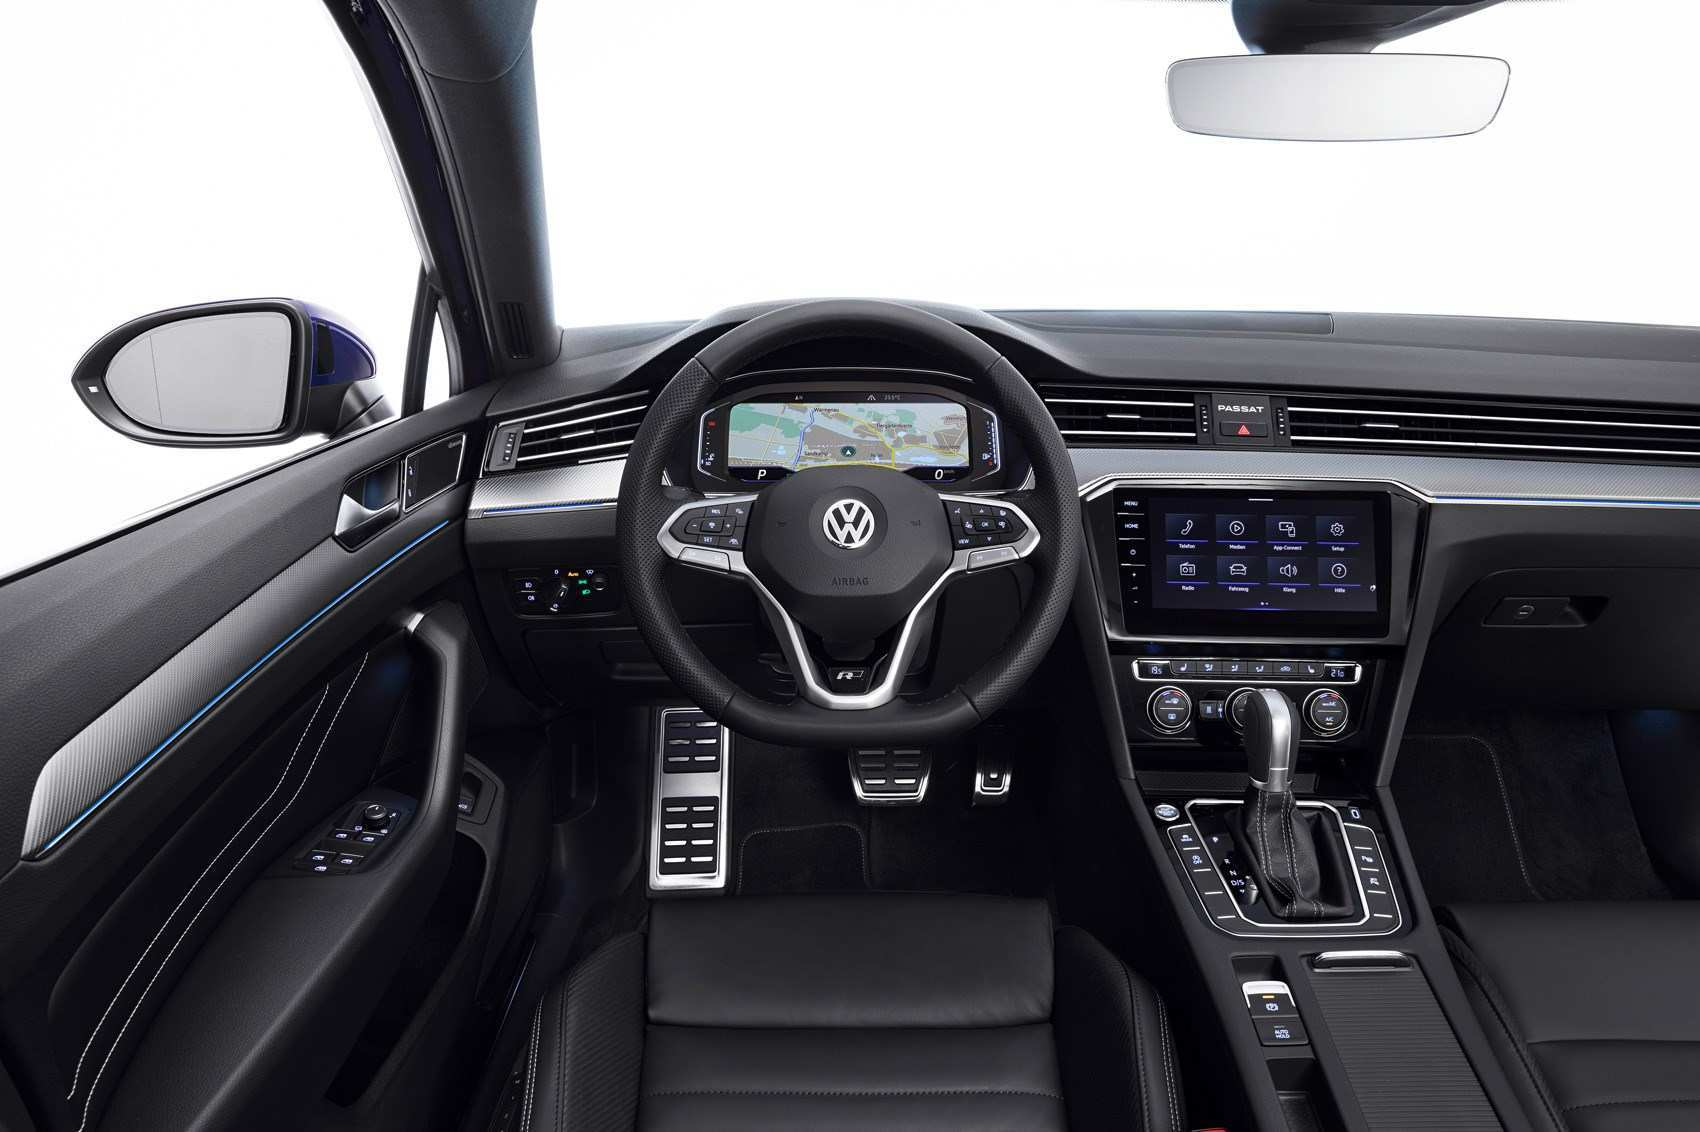 63 The 2019 Volkswagen Passat Interior Speed Test